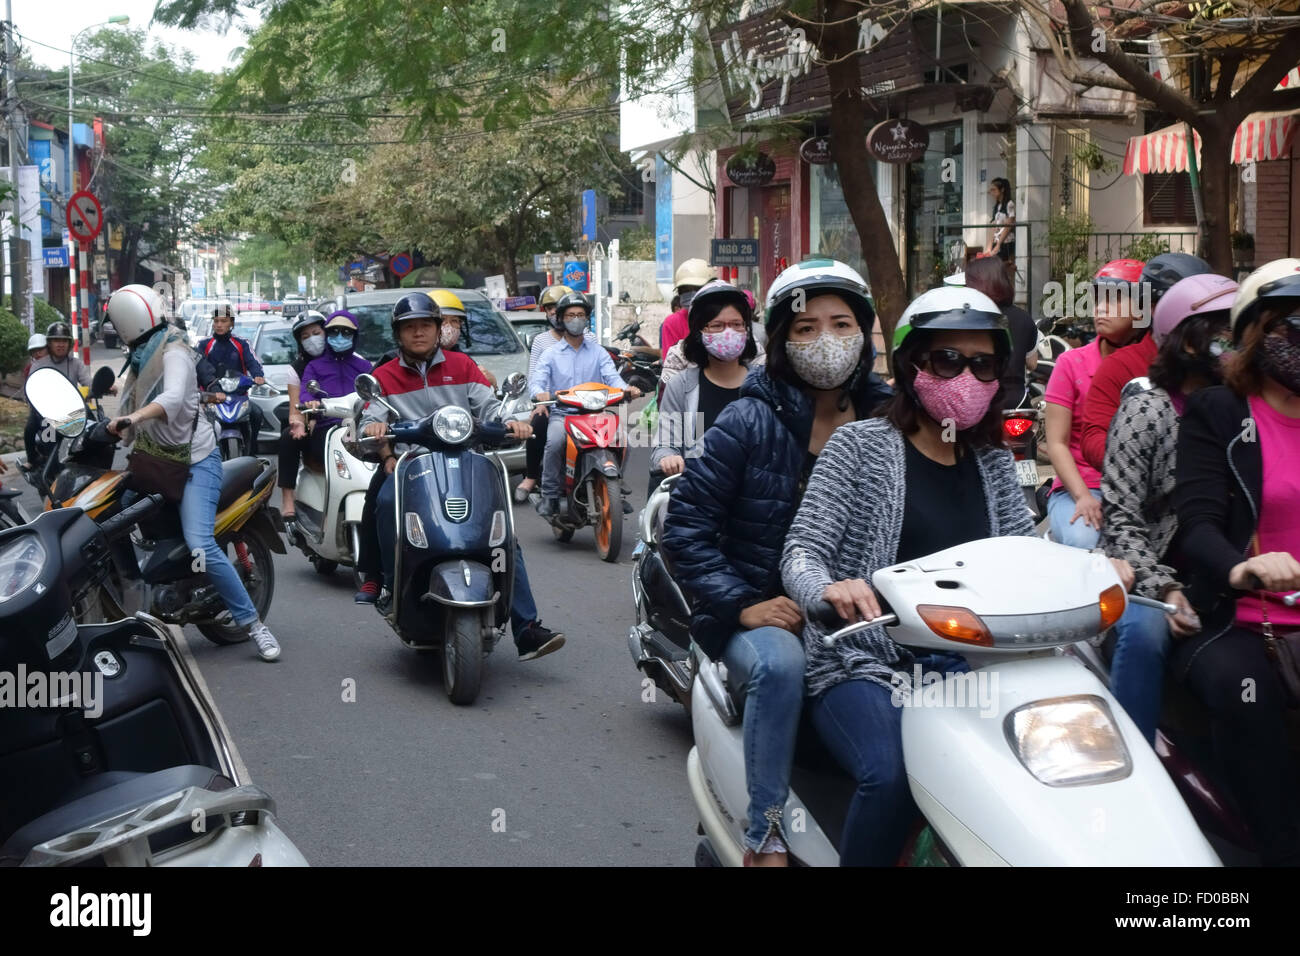 Scooters with riders, some wearing face masks, on a busy street in Hanoi, Vietnam - Stock Image